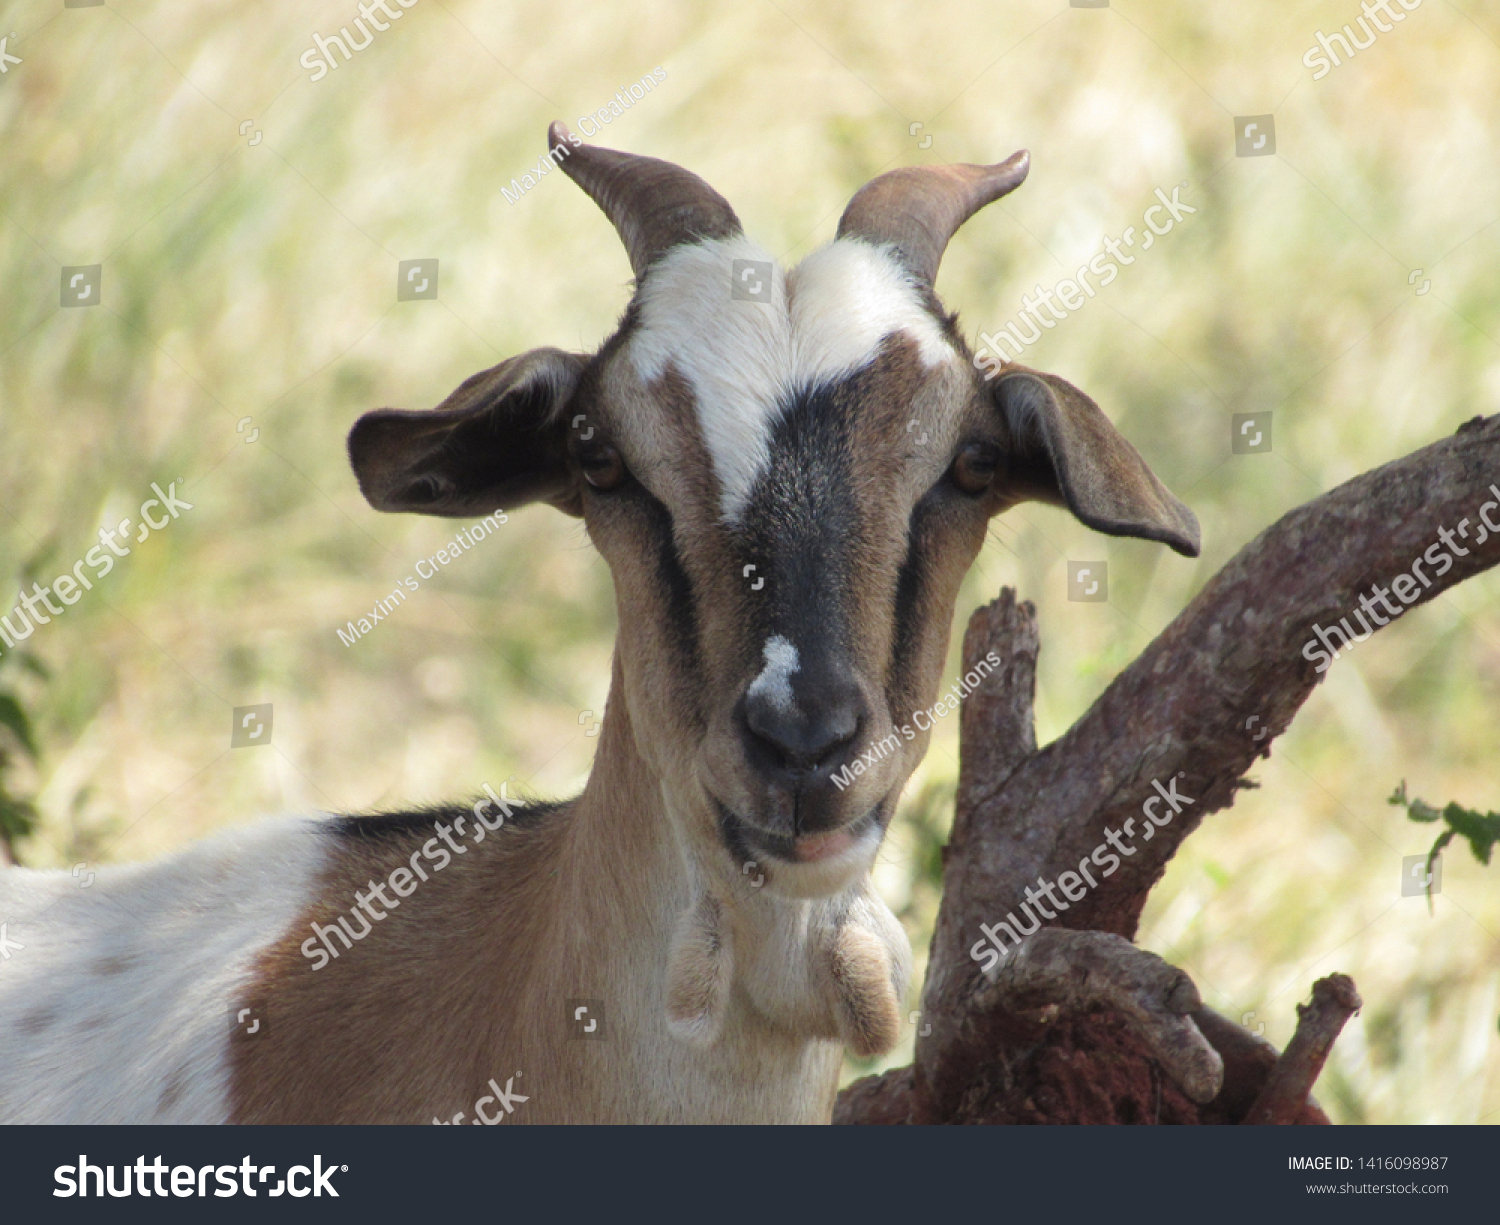 stock-photo-cute-small-goat-facing-the-c